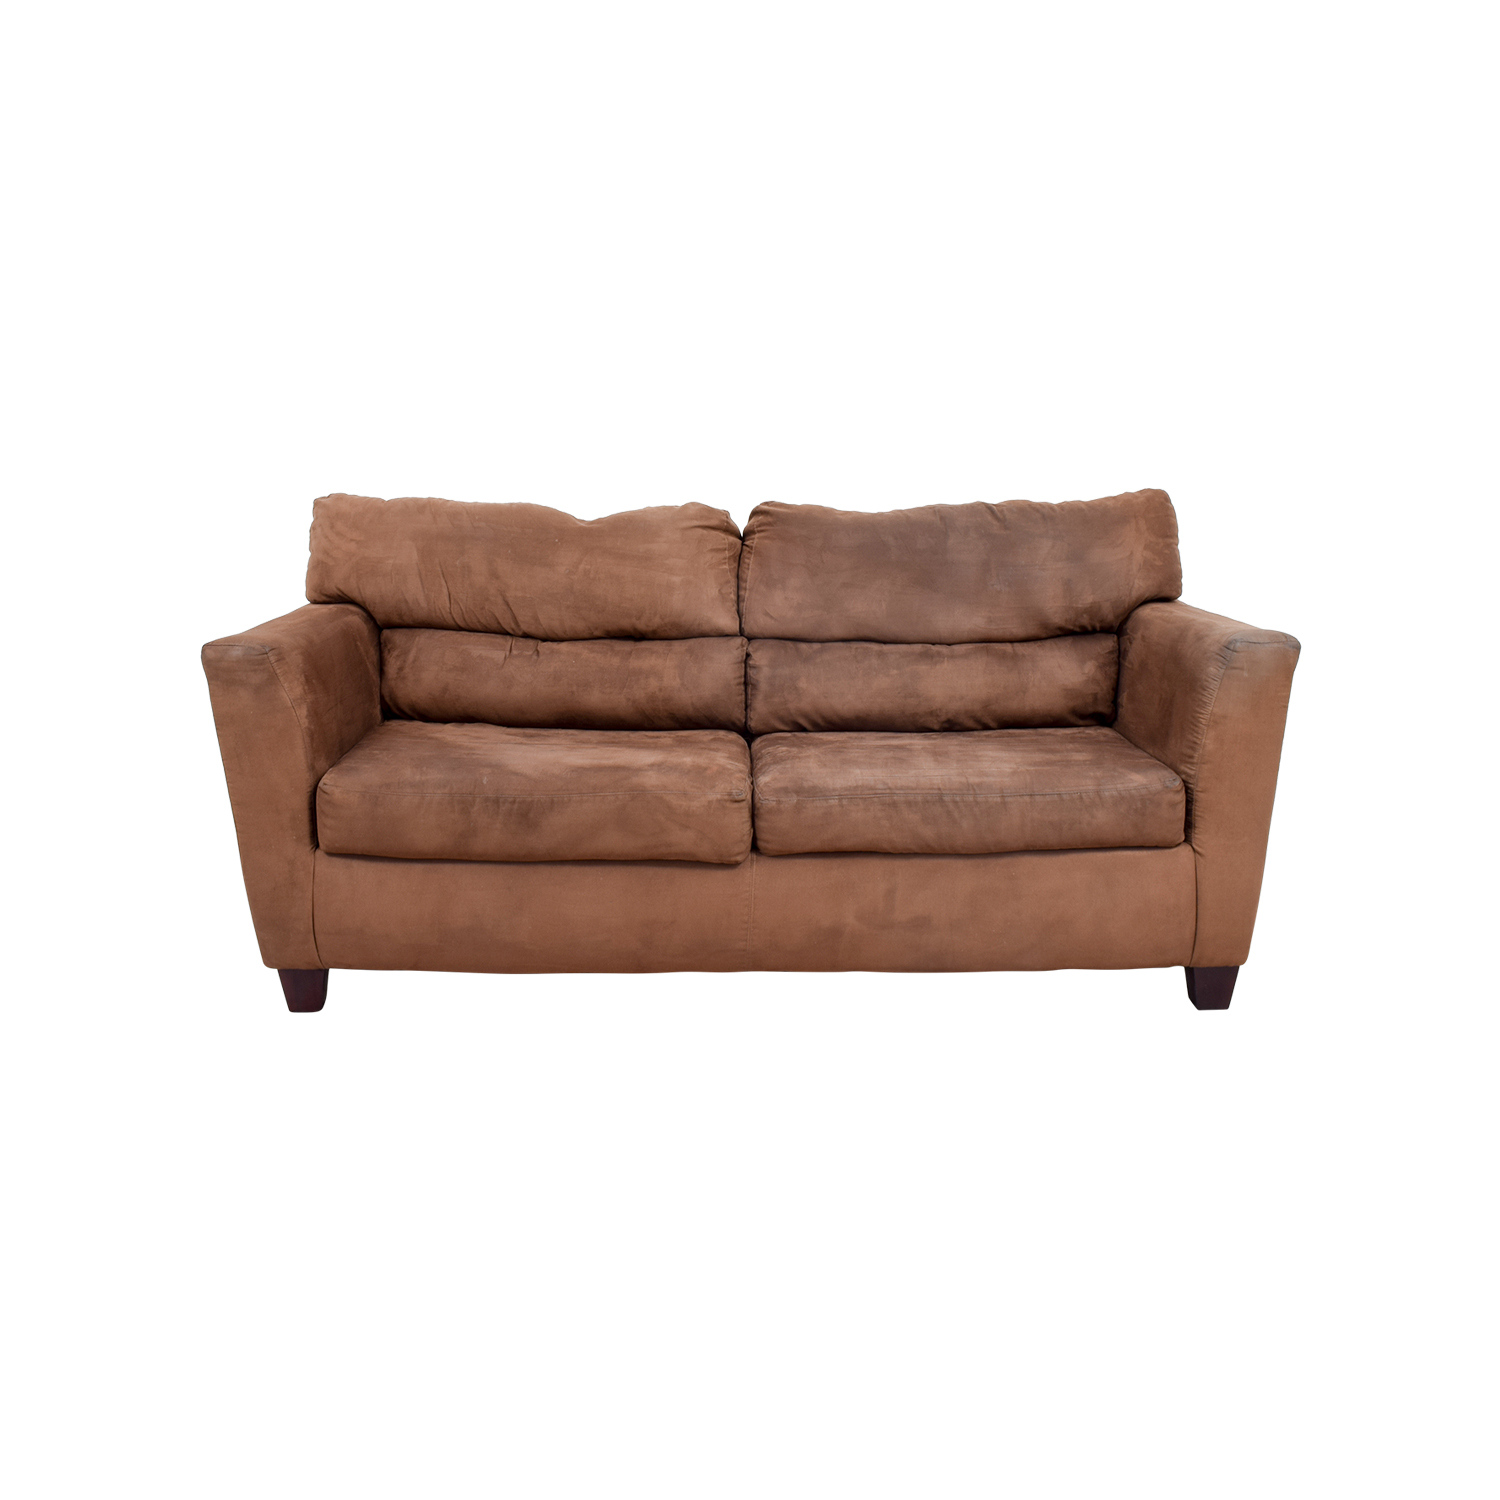 40% OFF Macy s Macy s Grey Fabric Couch and Ottoman Sofas